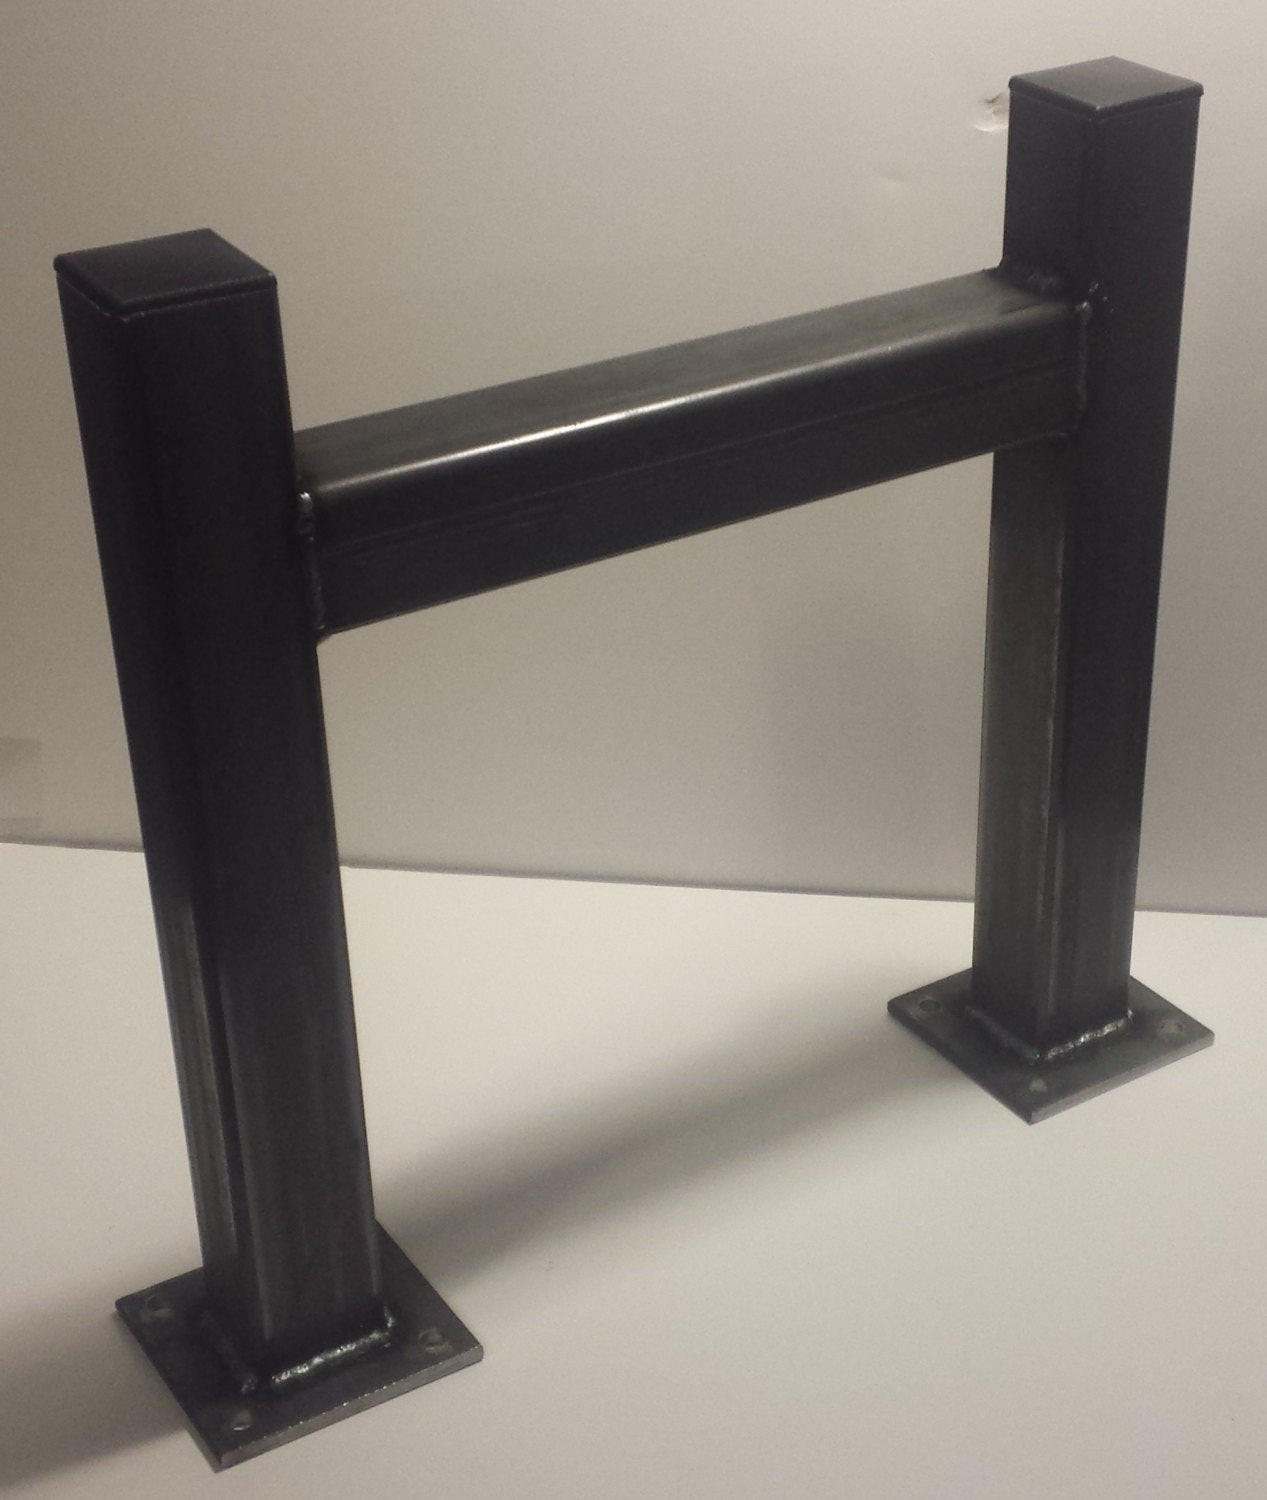 Best ideas about DIY Metal Table Legs . Save or Pin DIY Square Heavy Duty Metal Tube Table Legs Set of 2 Now.